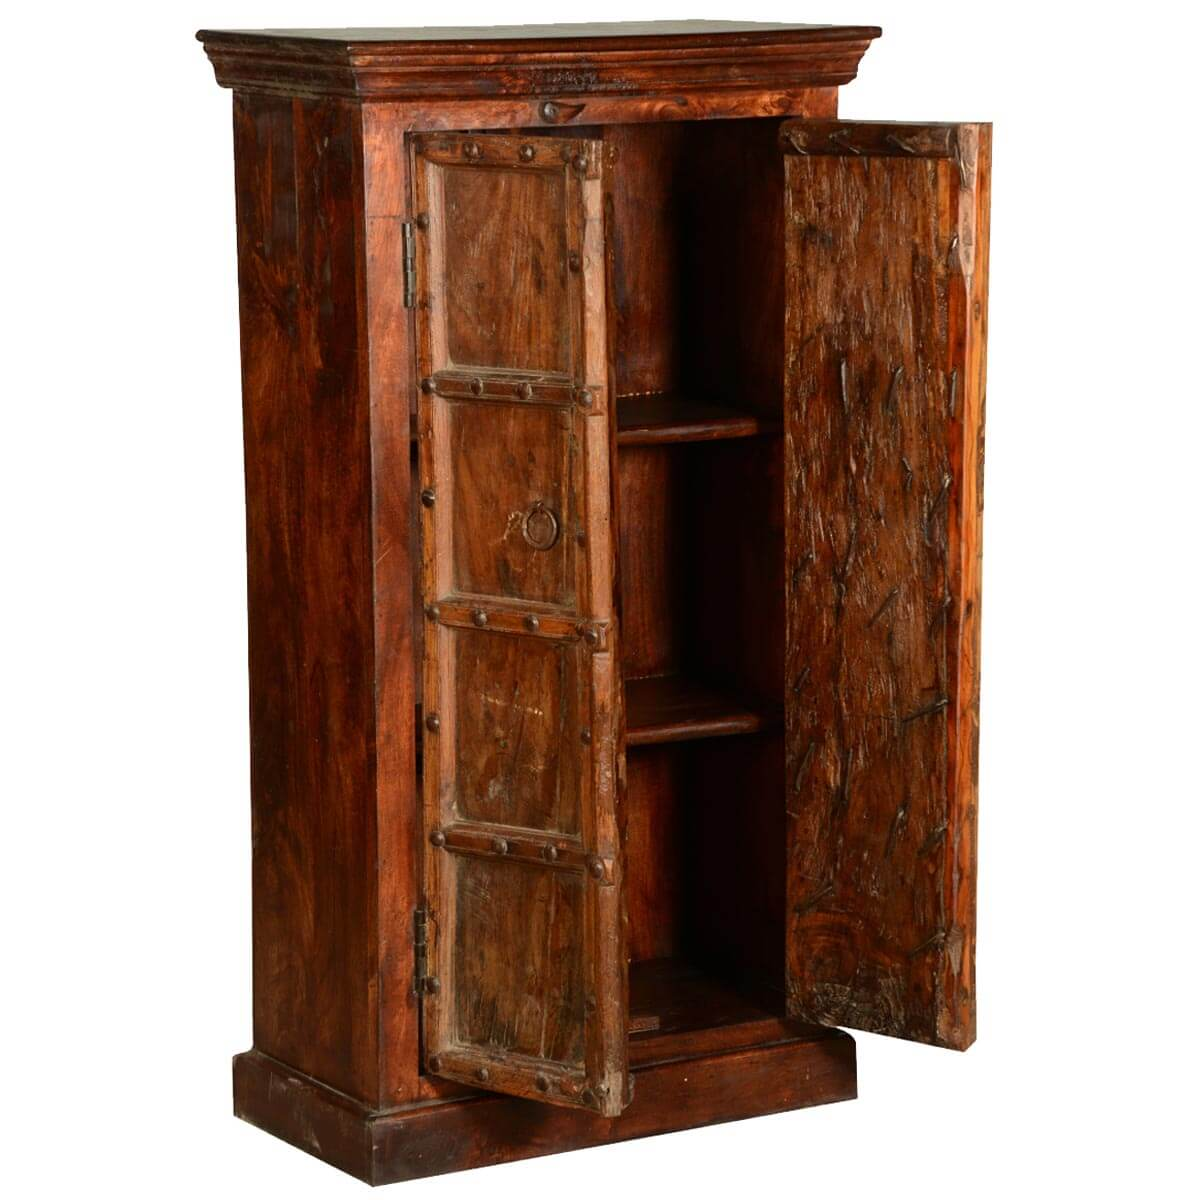 cankton rustic reclaimed wood double door tall storage cabinet. Black Bedroom Furniture Sets. Home Design Ideas